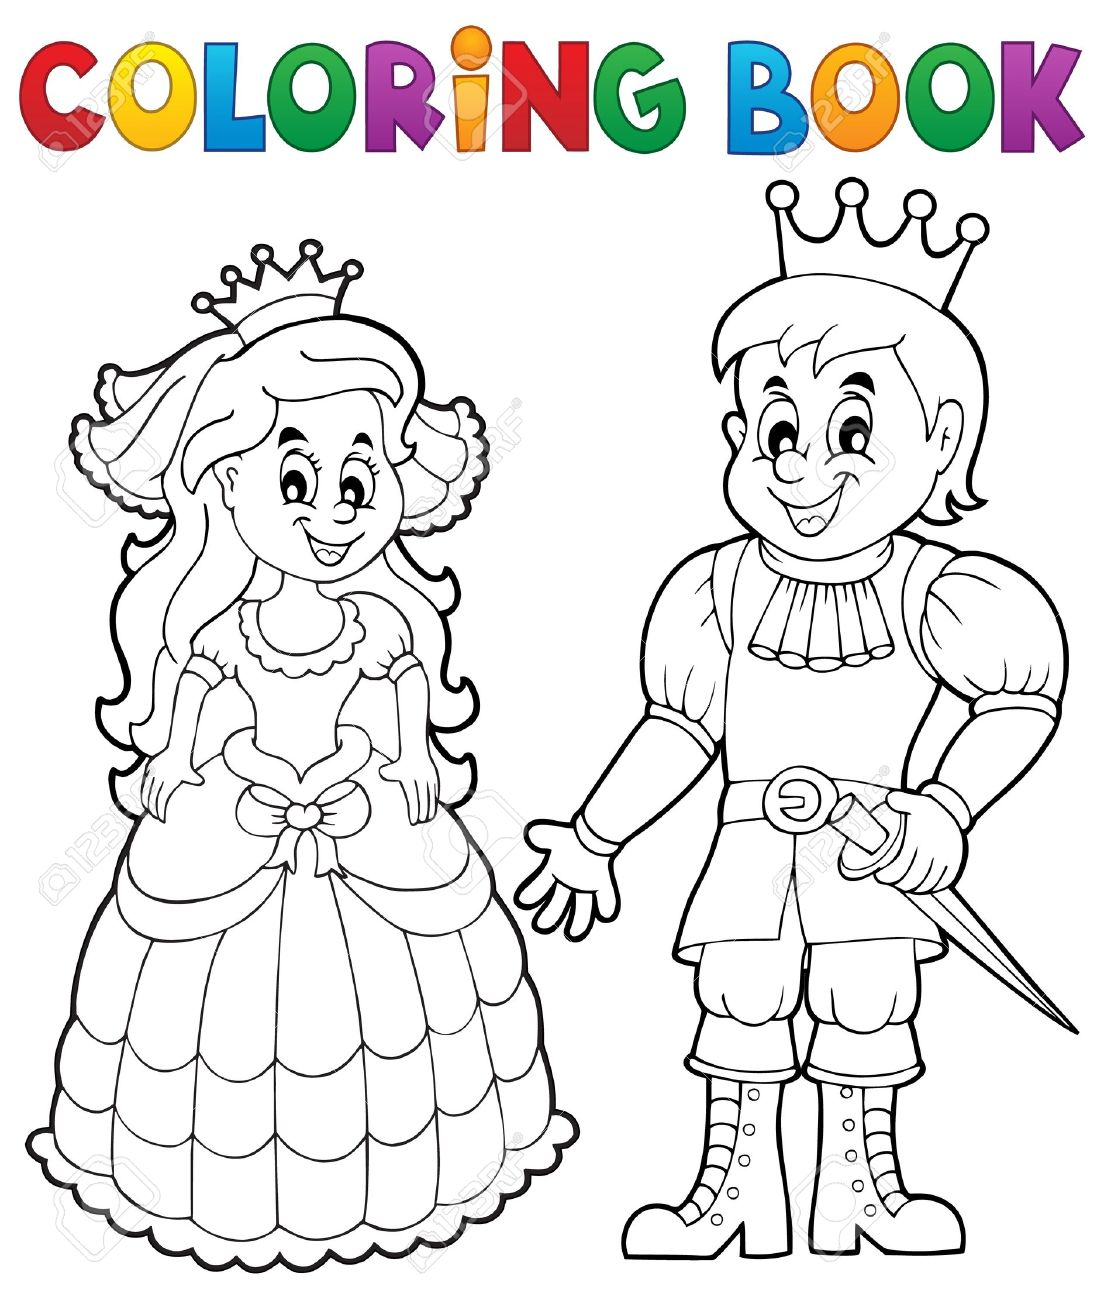 Coloring Book Princess And Prince Royalty Free Cliparts Vectors And Stock Illustration Image 54948538